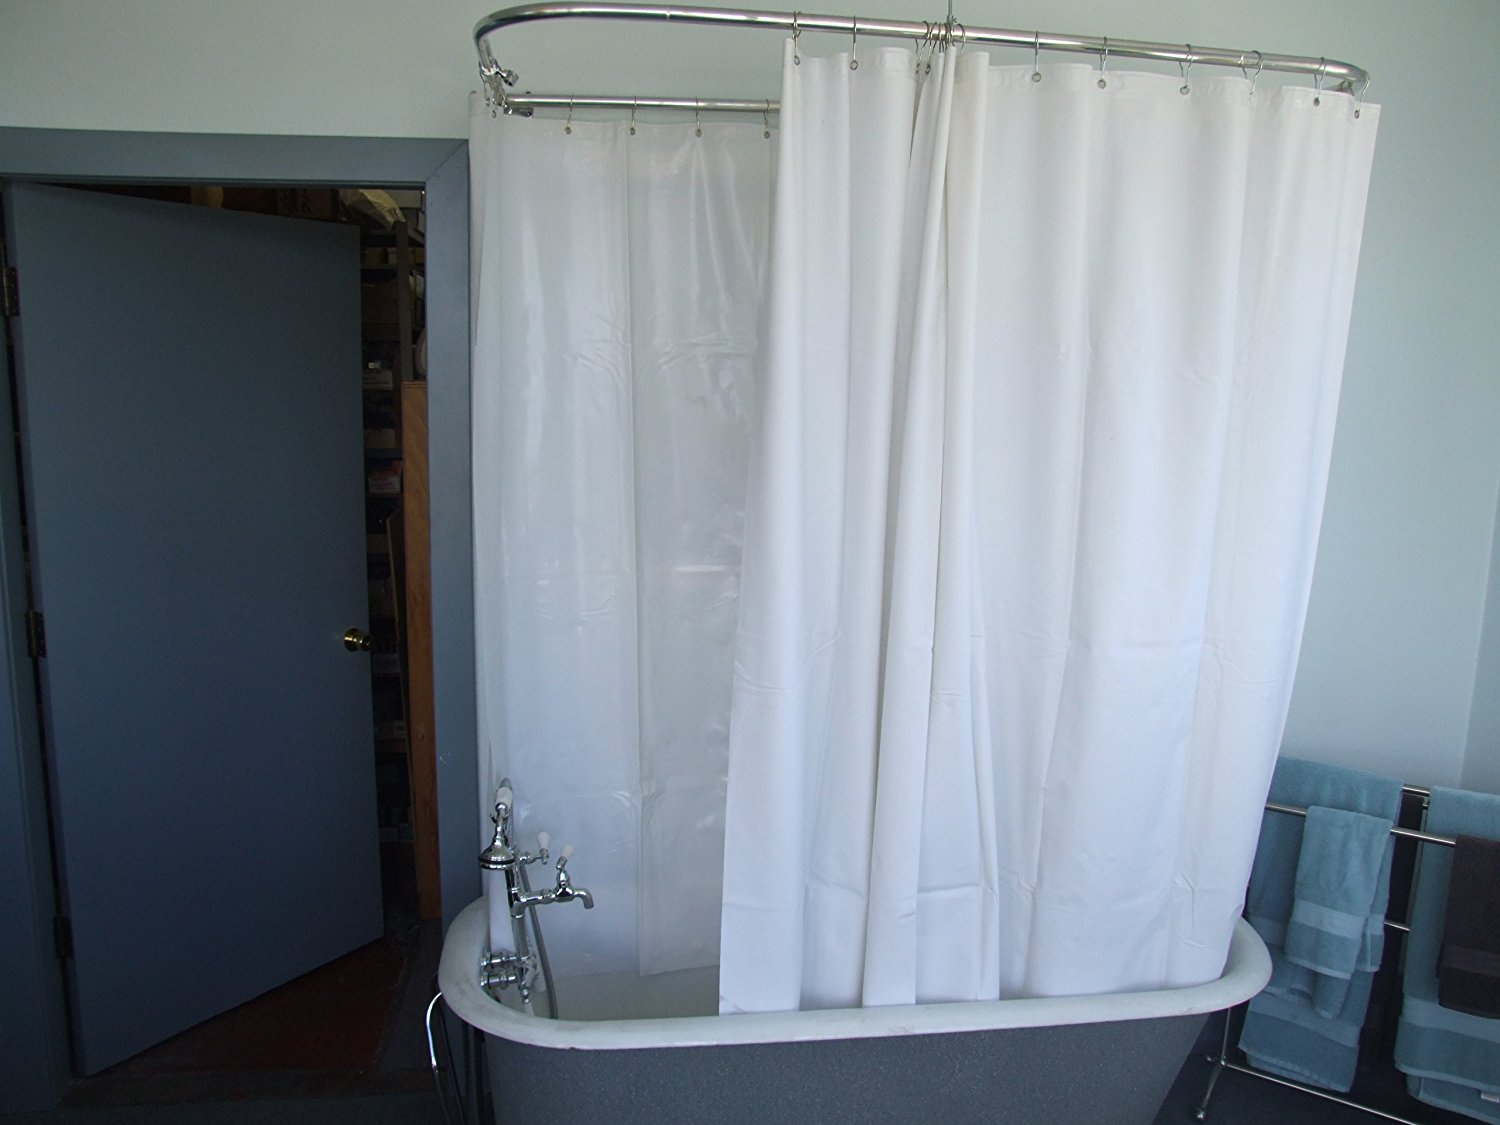 Surround Shower Curtain Liner • Shower Curtains Ideas